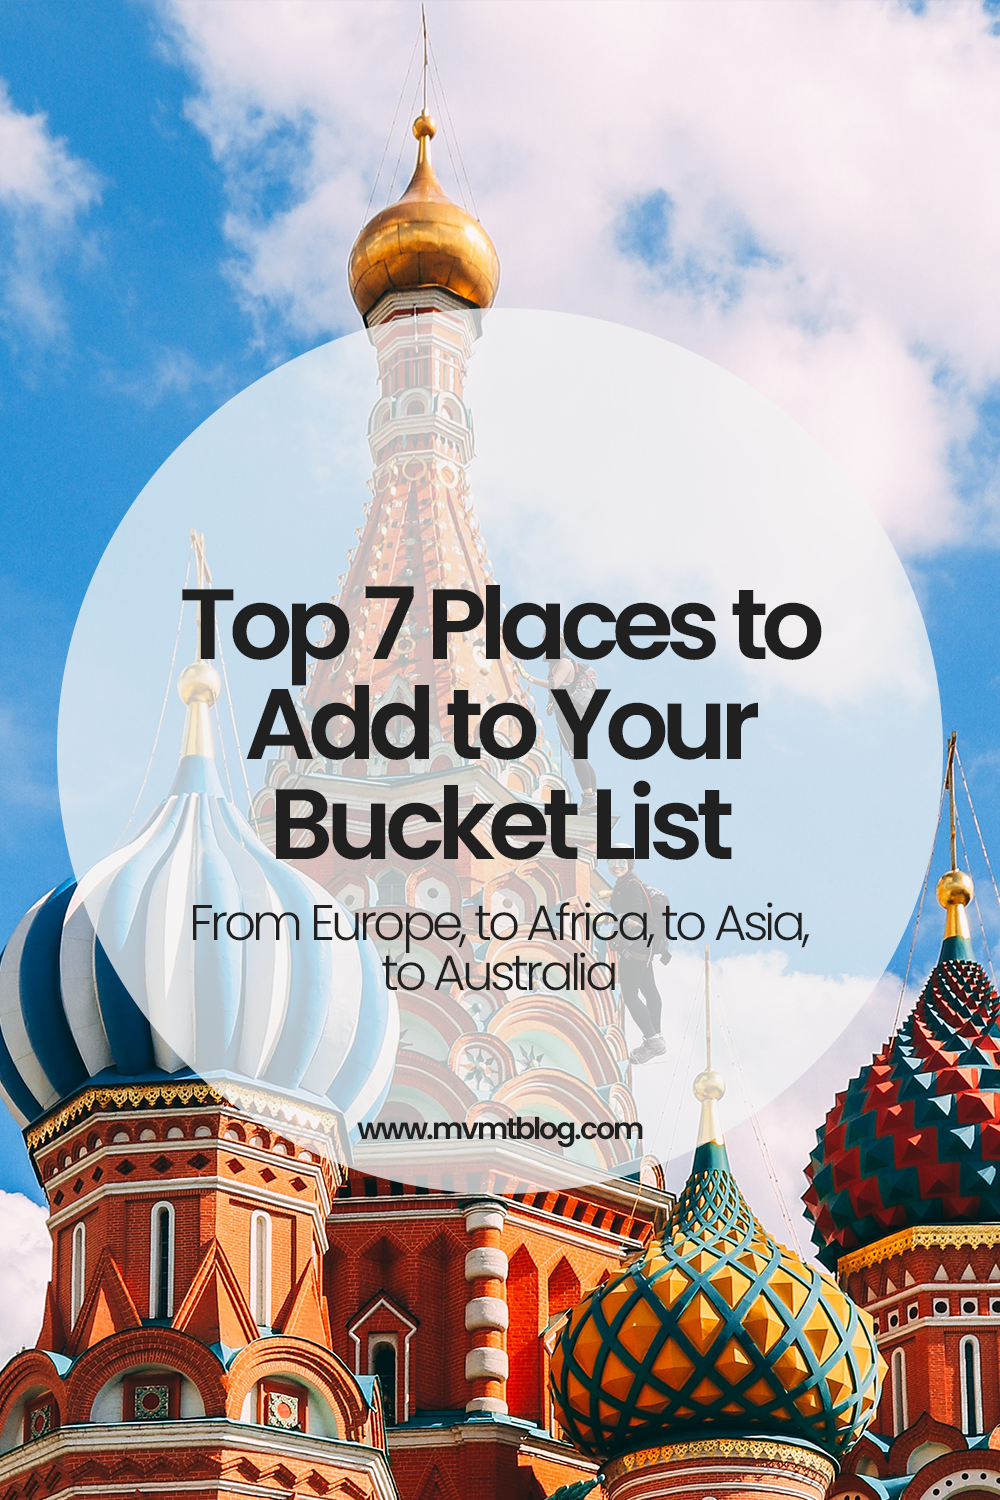 Top 7 Places to Add to Your Bucket List (After COVID-19)